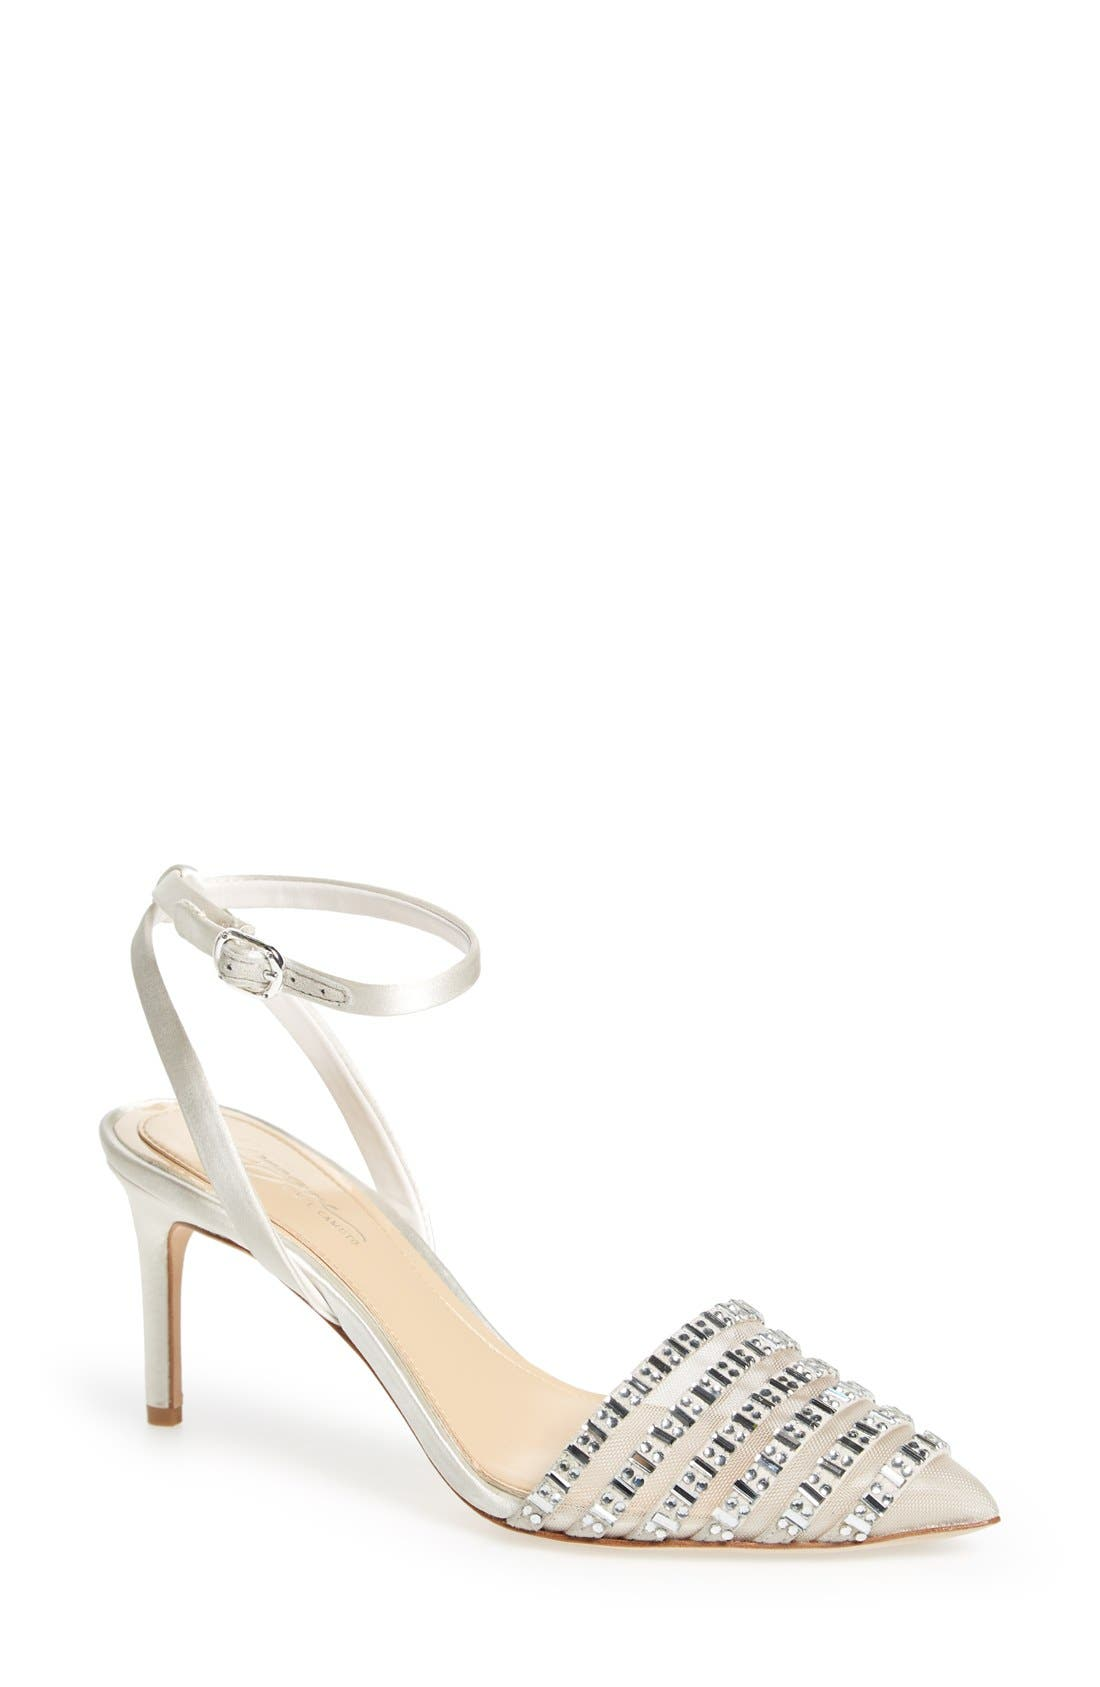 Alternate Image 1 Selected - Imagine by Vince Camuto 'Michael' Sandal (Women)